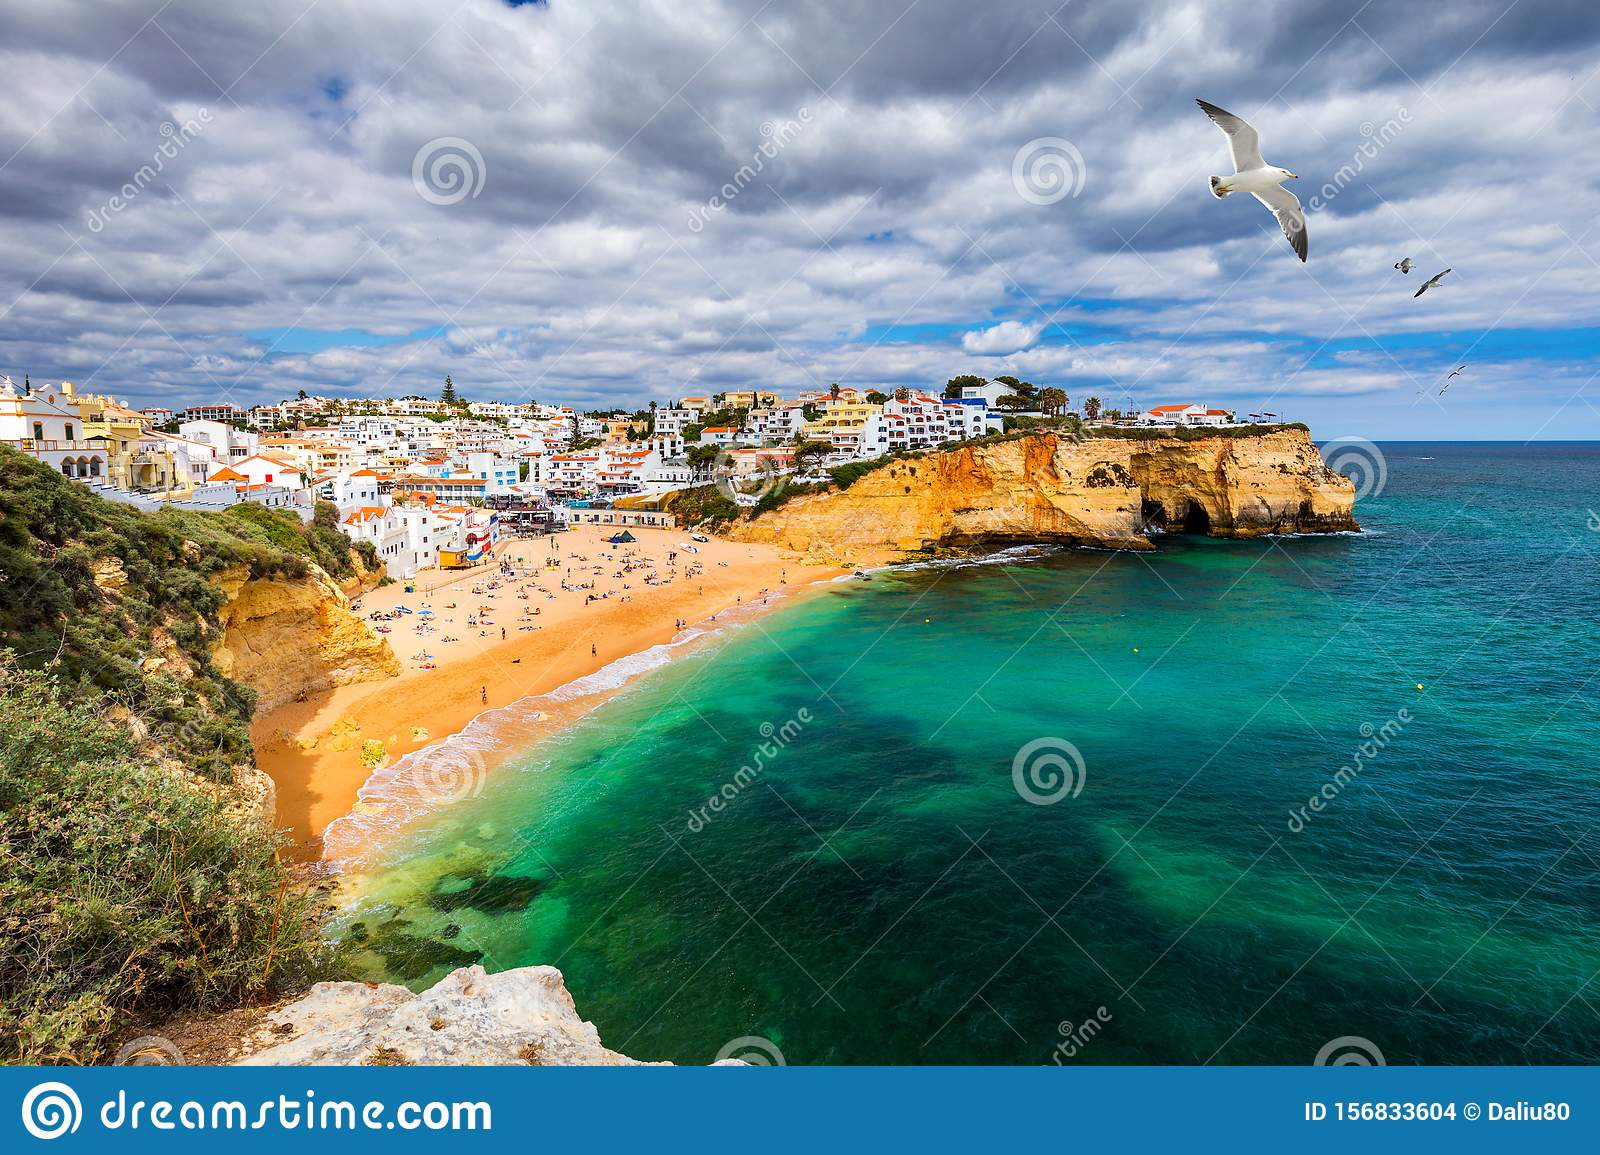 View of Carvoeiro fishing village with beautiful beach, Algarve, Portugal. View of beach in Carvoeiro town with colorful houses on